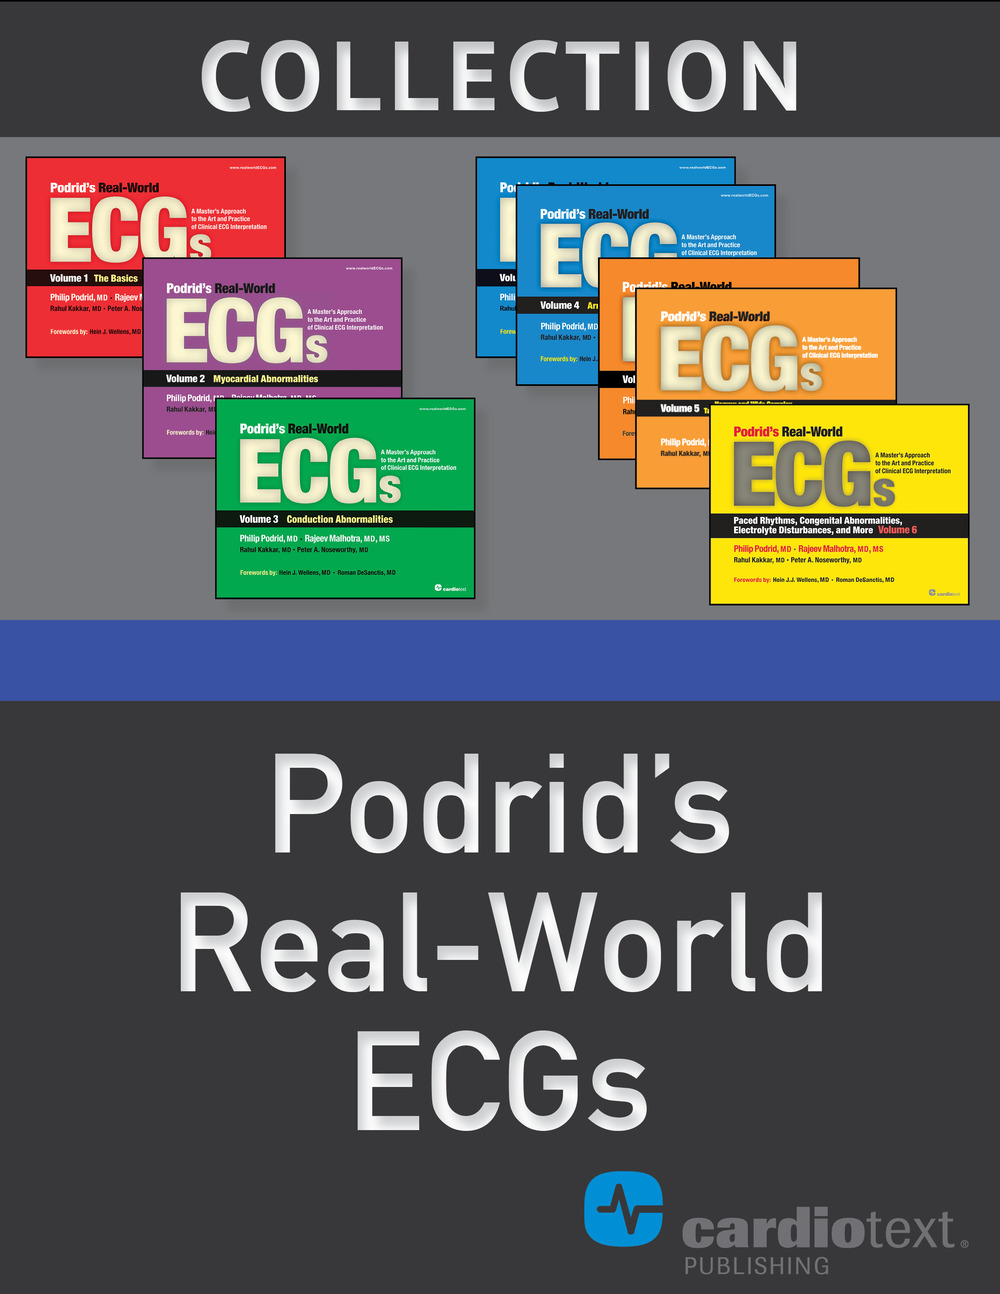 Podrid's REal-World ECGs